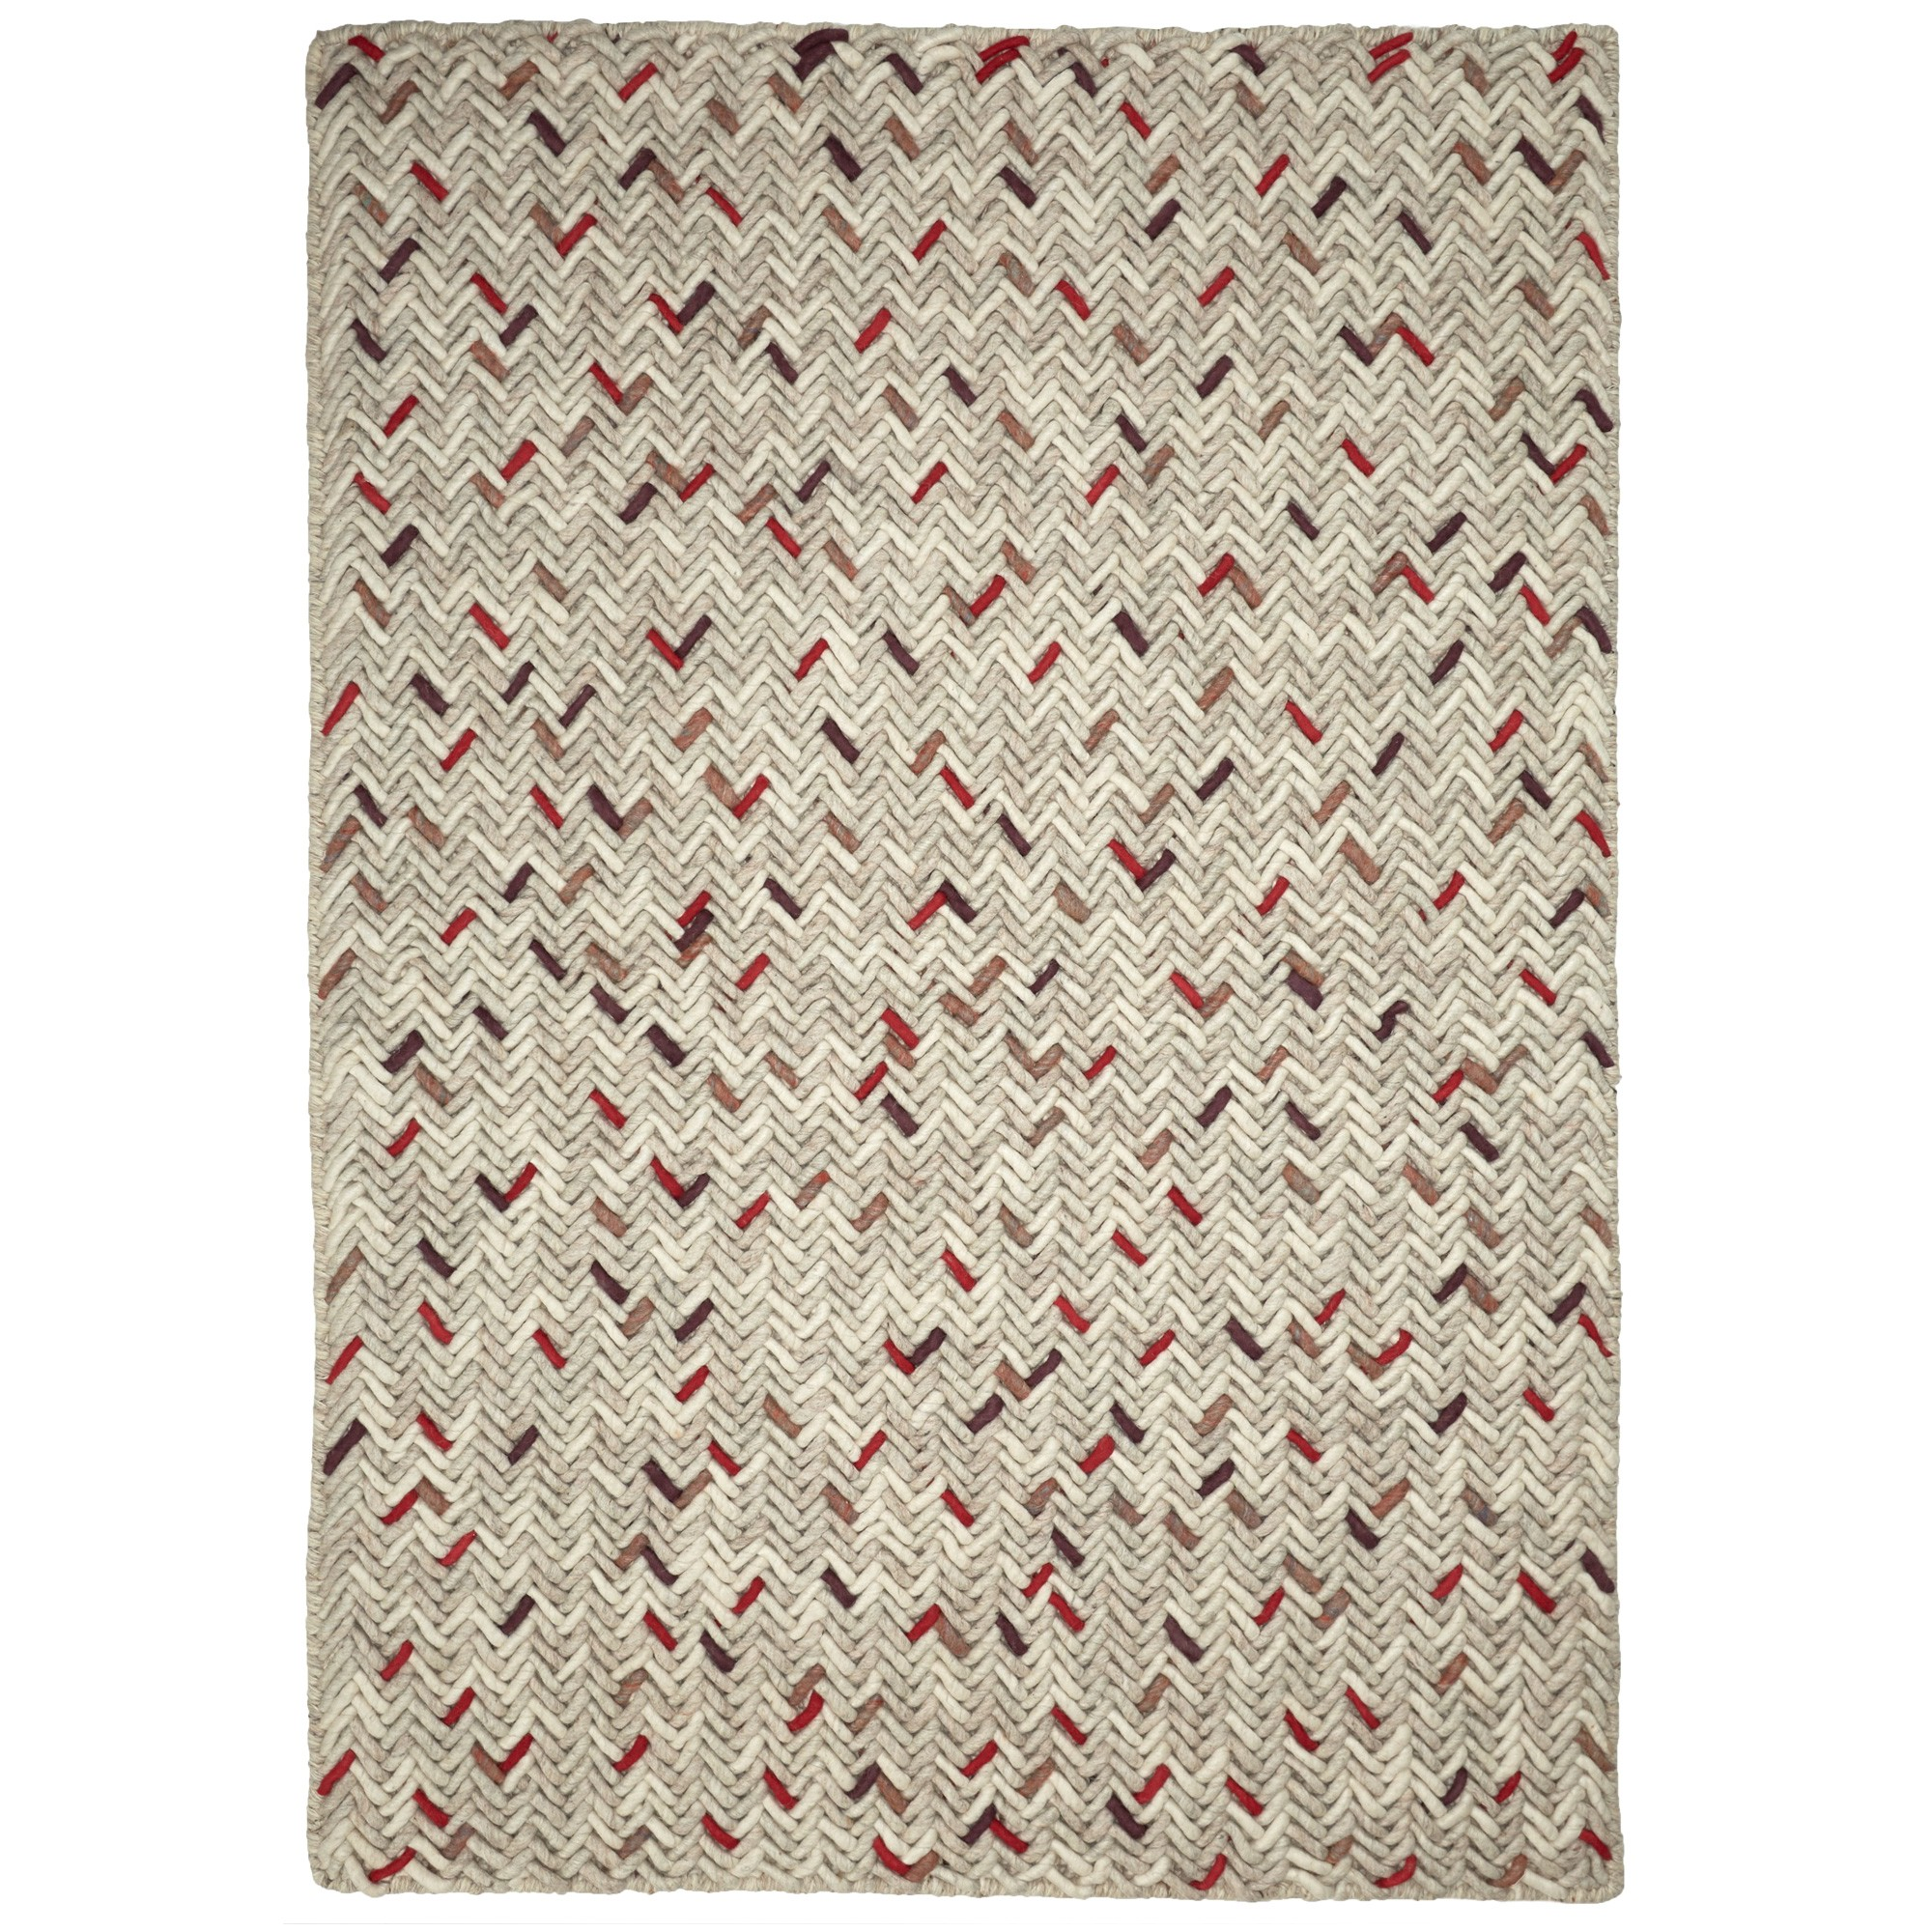 Crisscross Handwoven Wool Rug, 225x155cm, Cream / Red